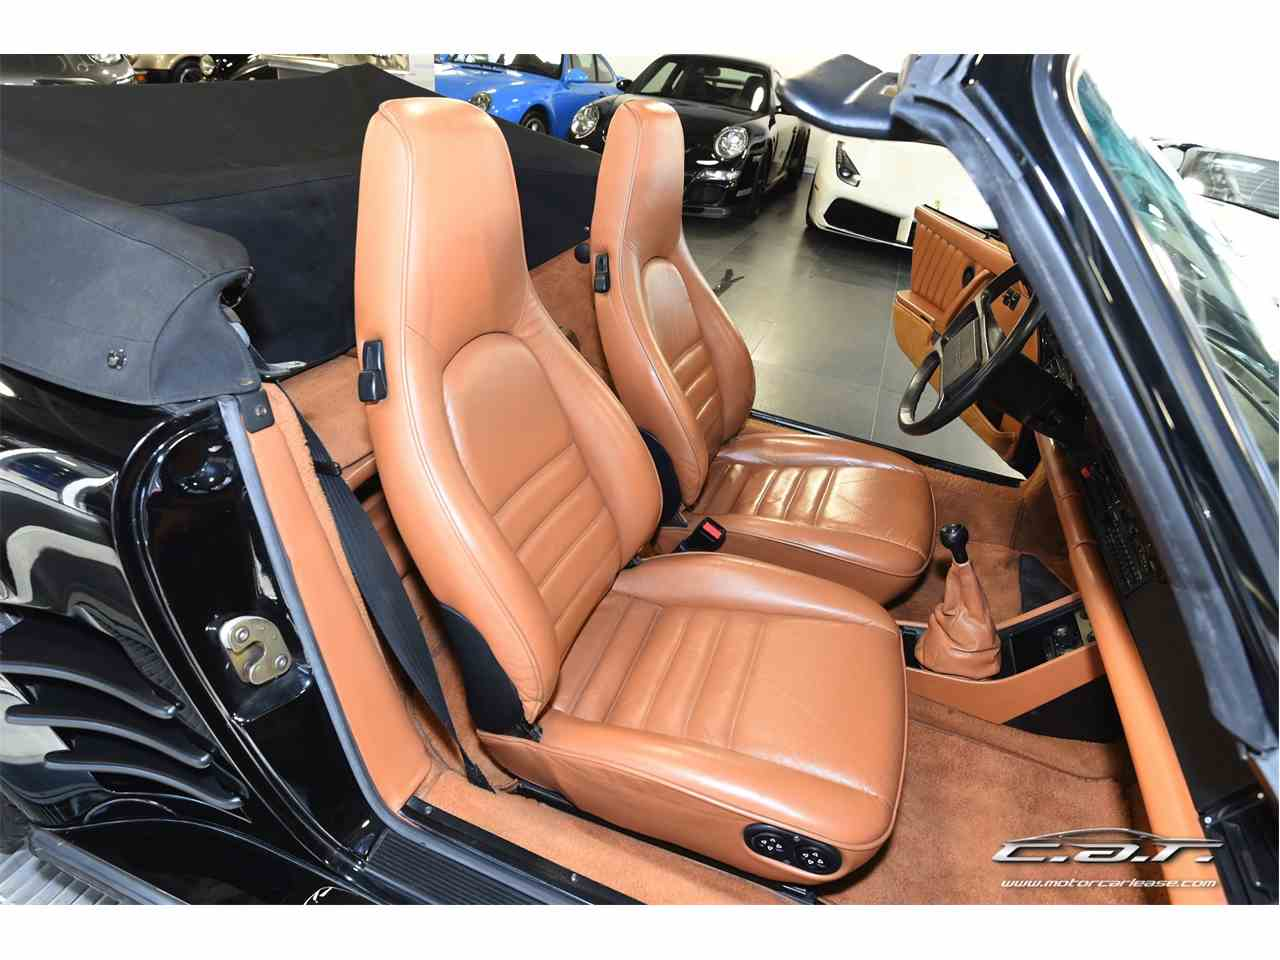 Large Picture of 1987 Porsche 930 Turbo located in Quebec - $189,000.00 - J8YA